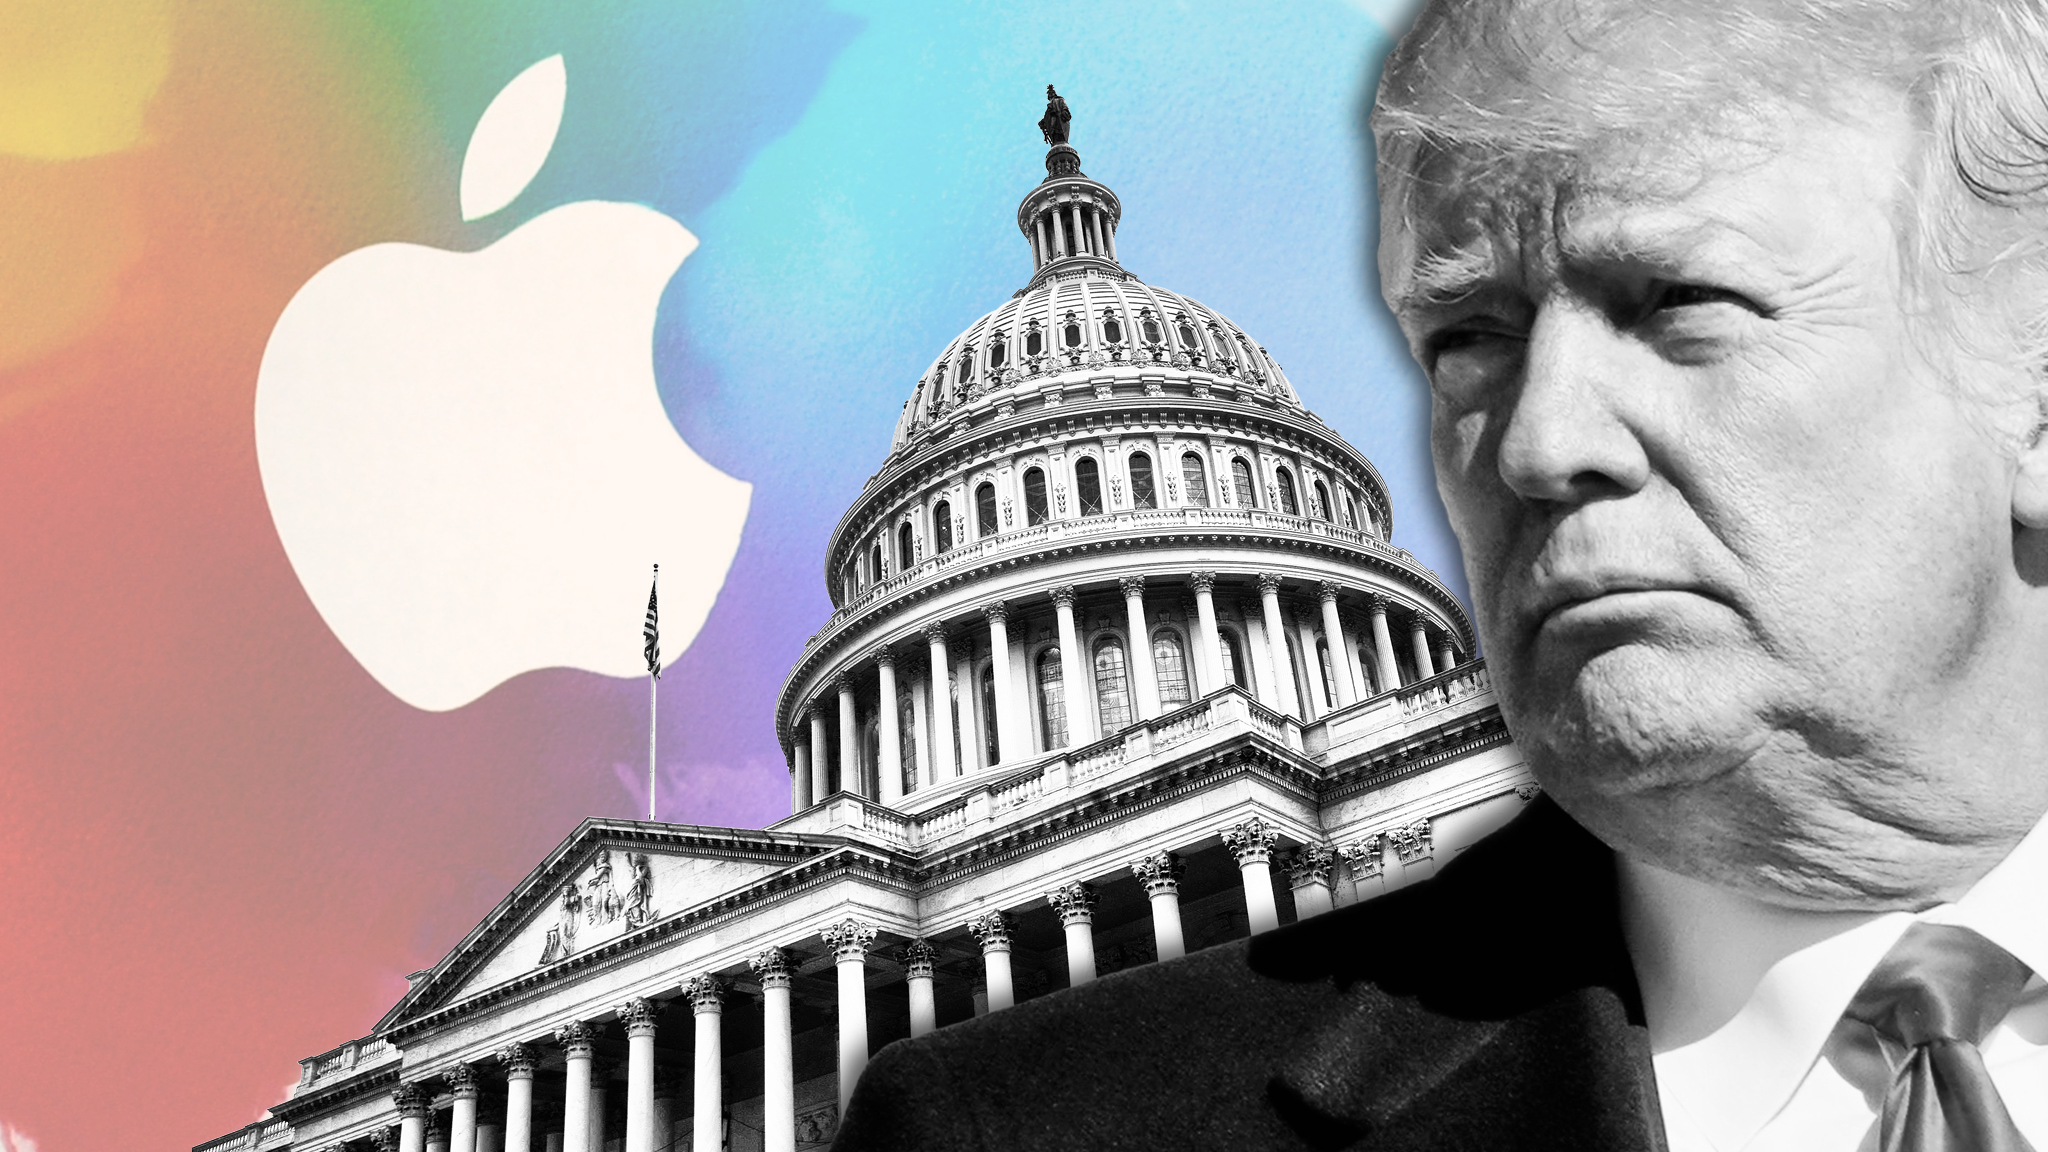 Tech companies expected to keep cash offshore despite tax reform